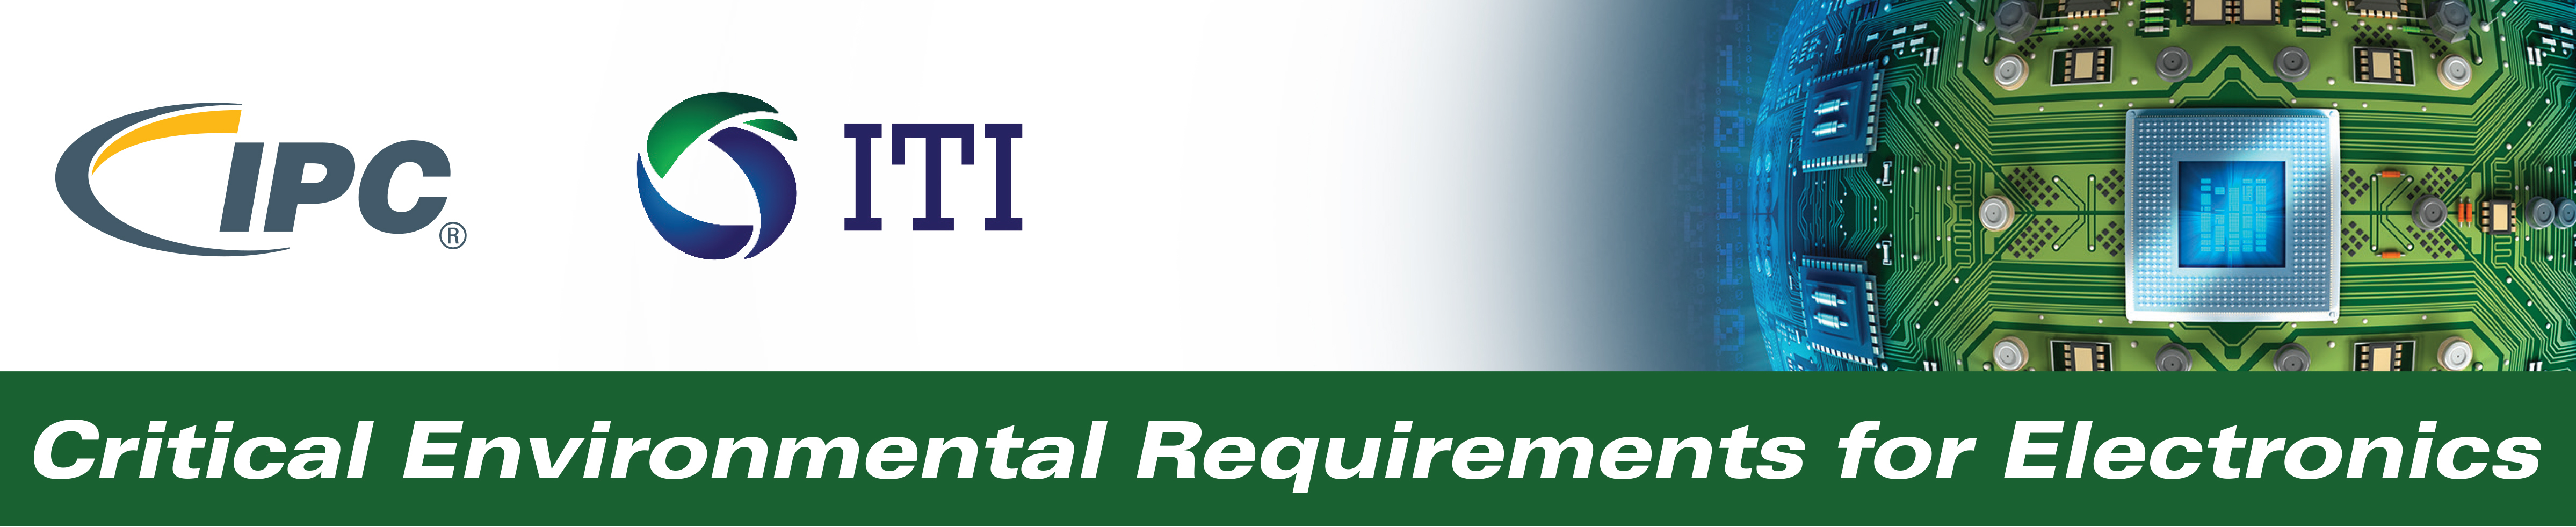 ITI/IPC Critical Environmental Requirements for Electronics Virtual Conference 2020